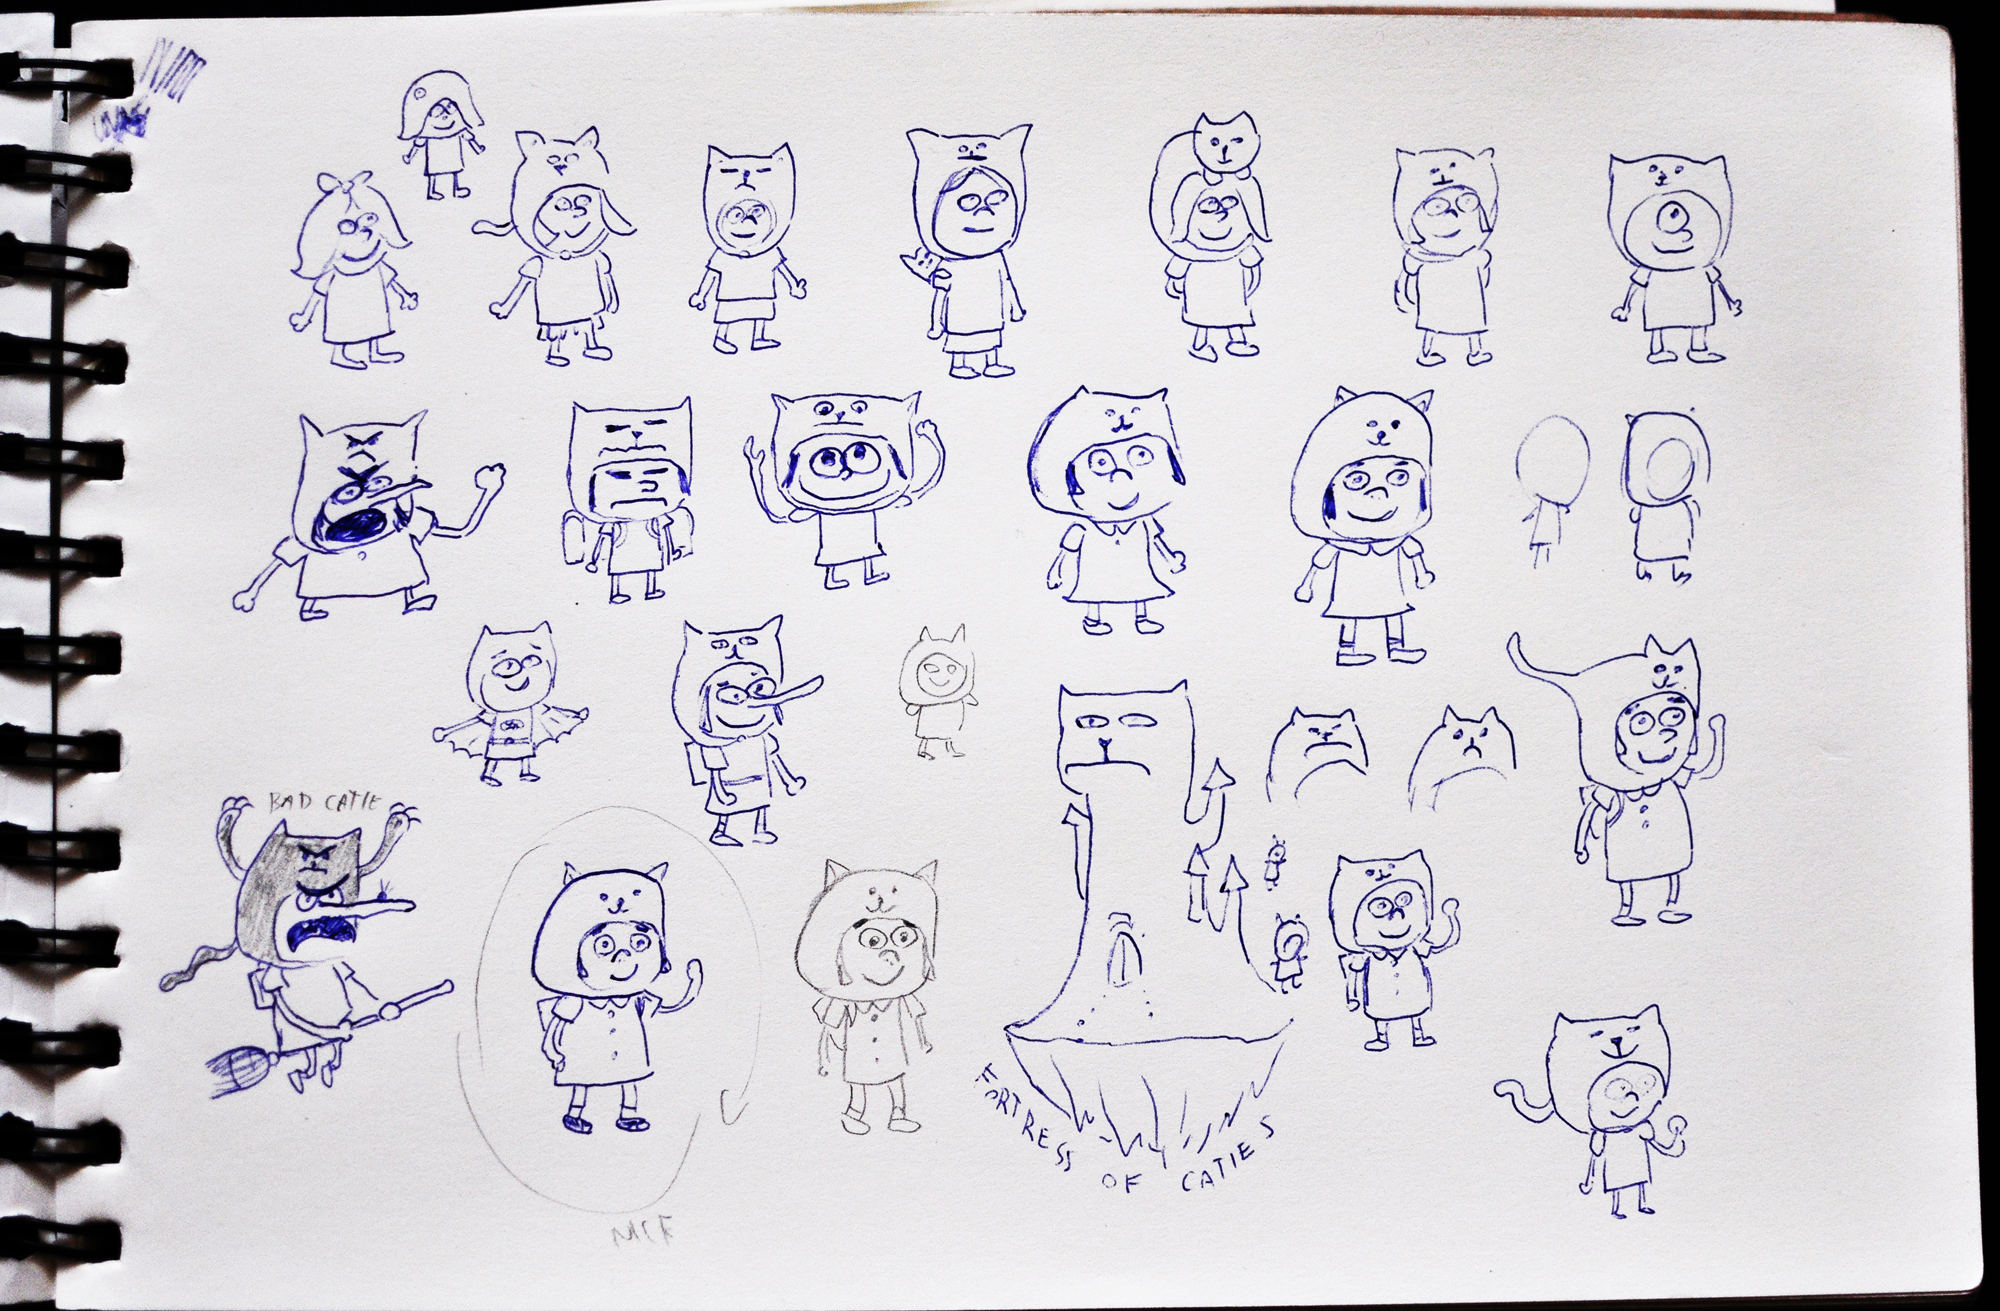 Catie in MeowmeowLand - Drawing and sketches of Catie as a main character of point-and-click adventure indie game